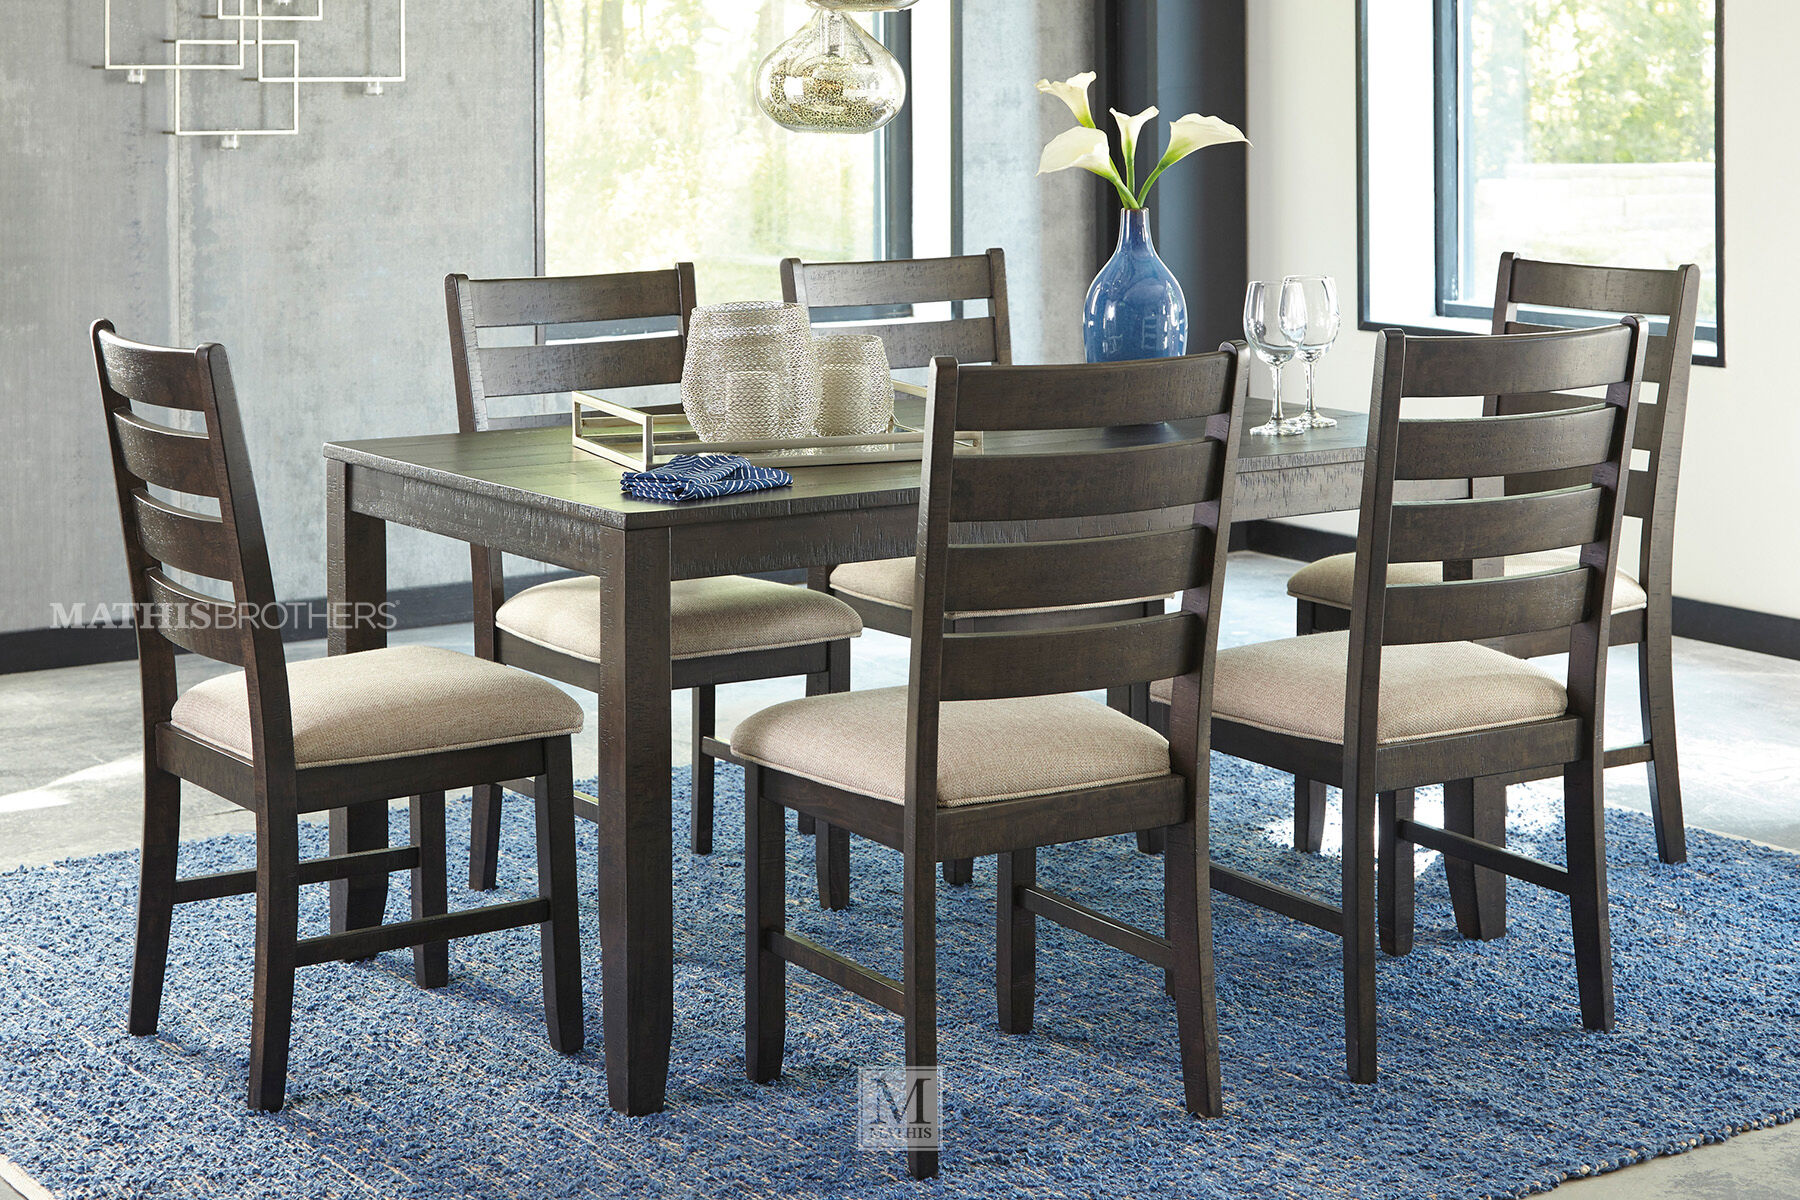 Ashley Rokane Brown Rectangle Seven Piece Dining Set Mathis Brothers Furniture